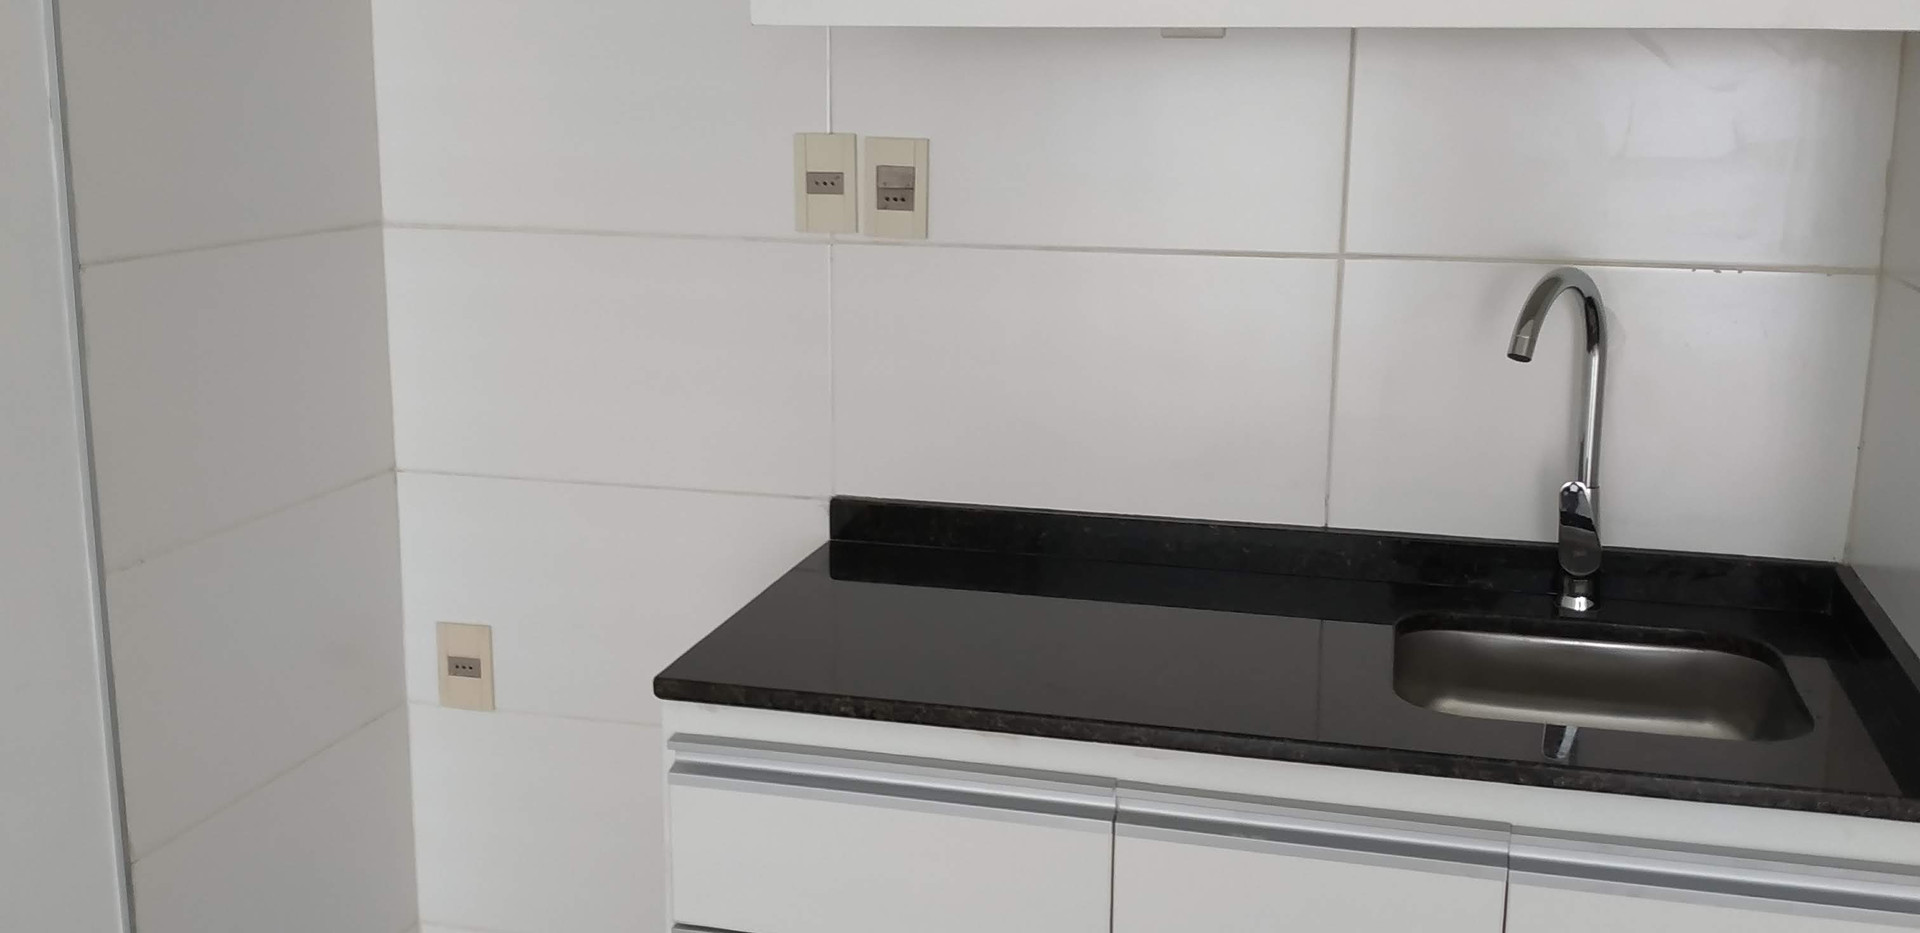 kitchenette con buenos placares